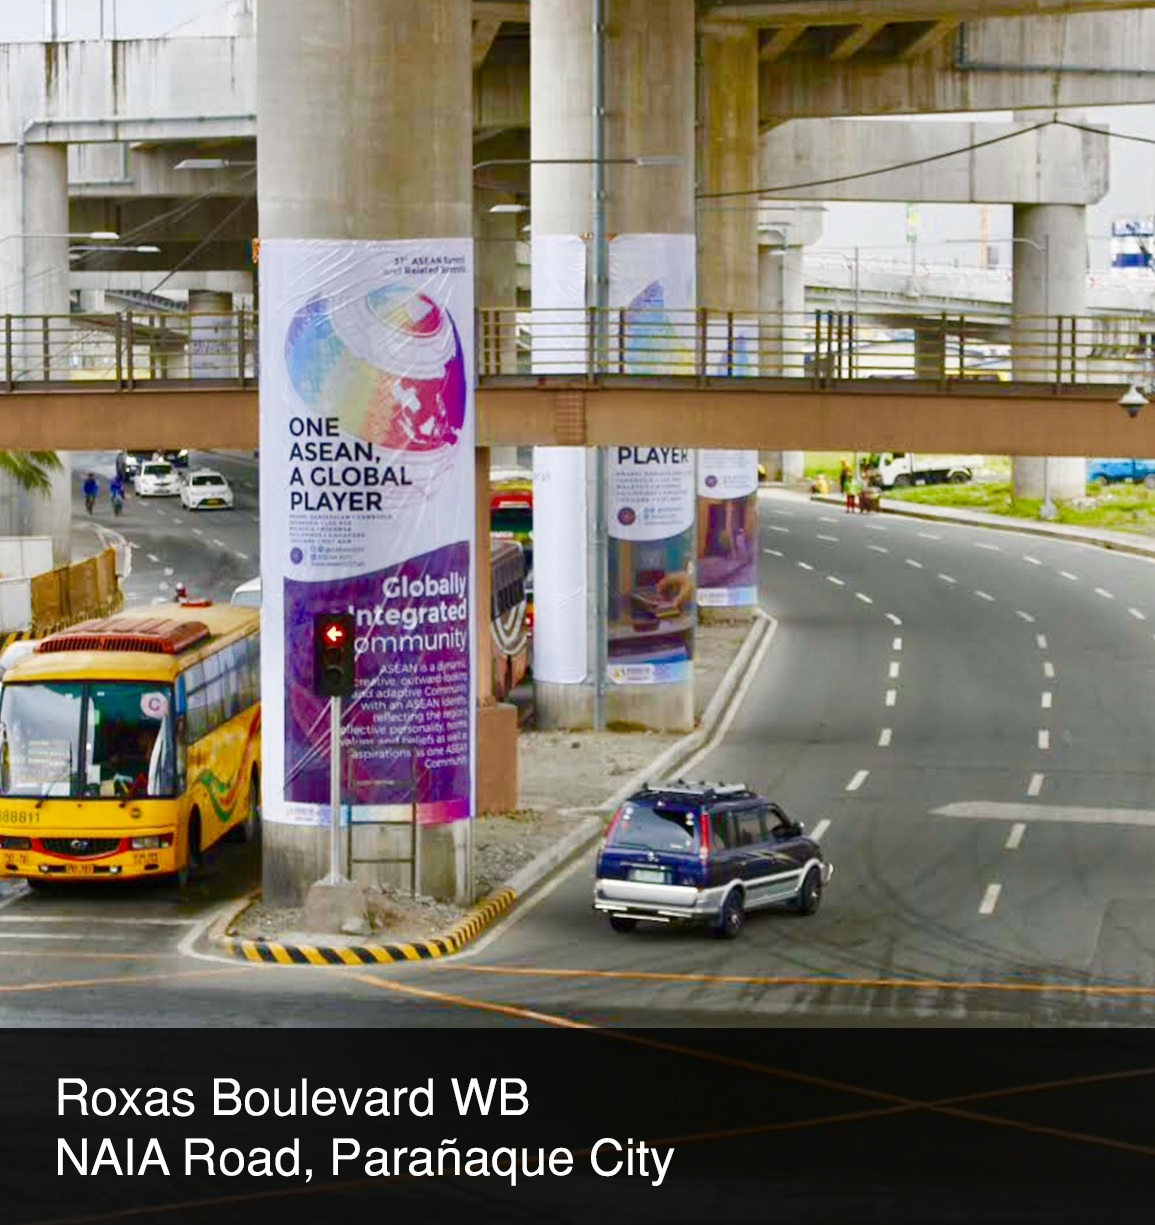 DOOH-ph-billboard-roxas-boulevard-west-bound-NAIA-road-paranque-city.jpg